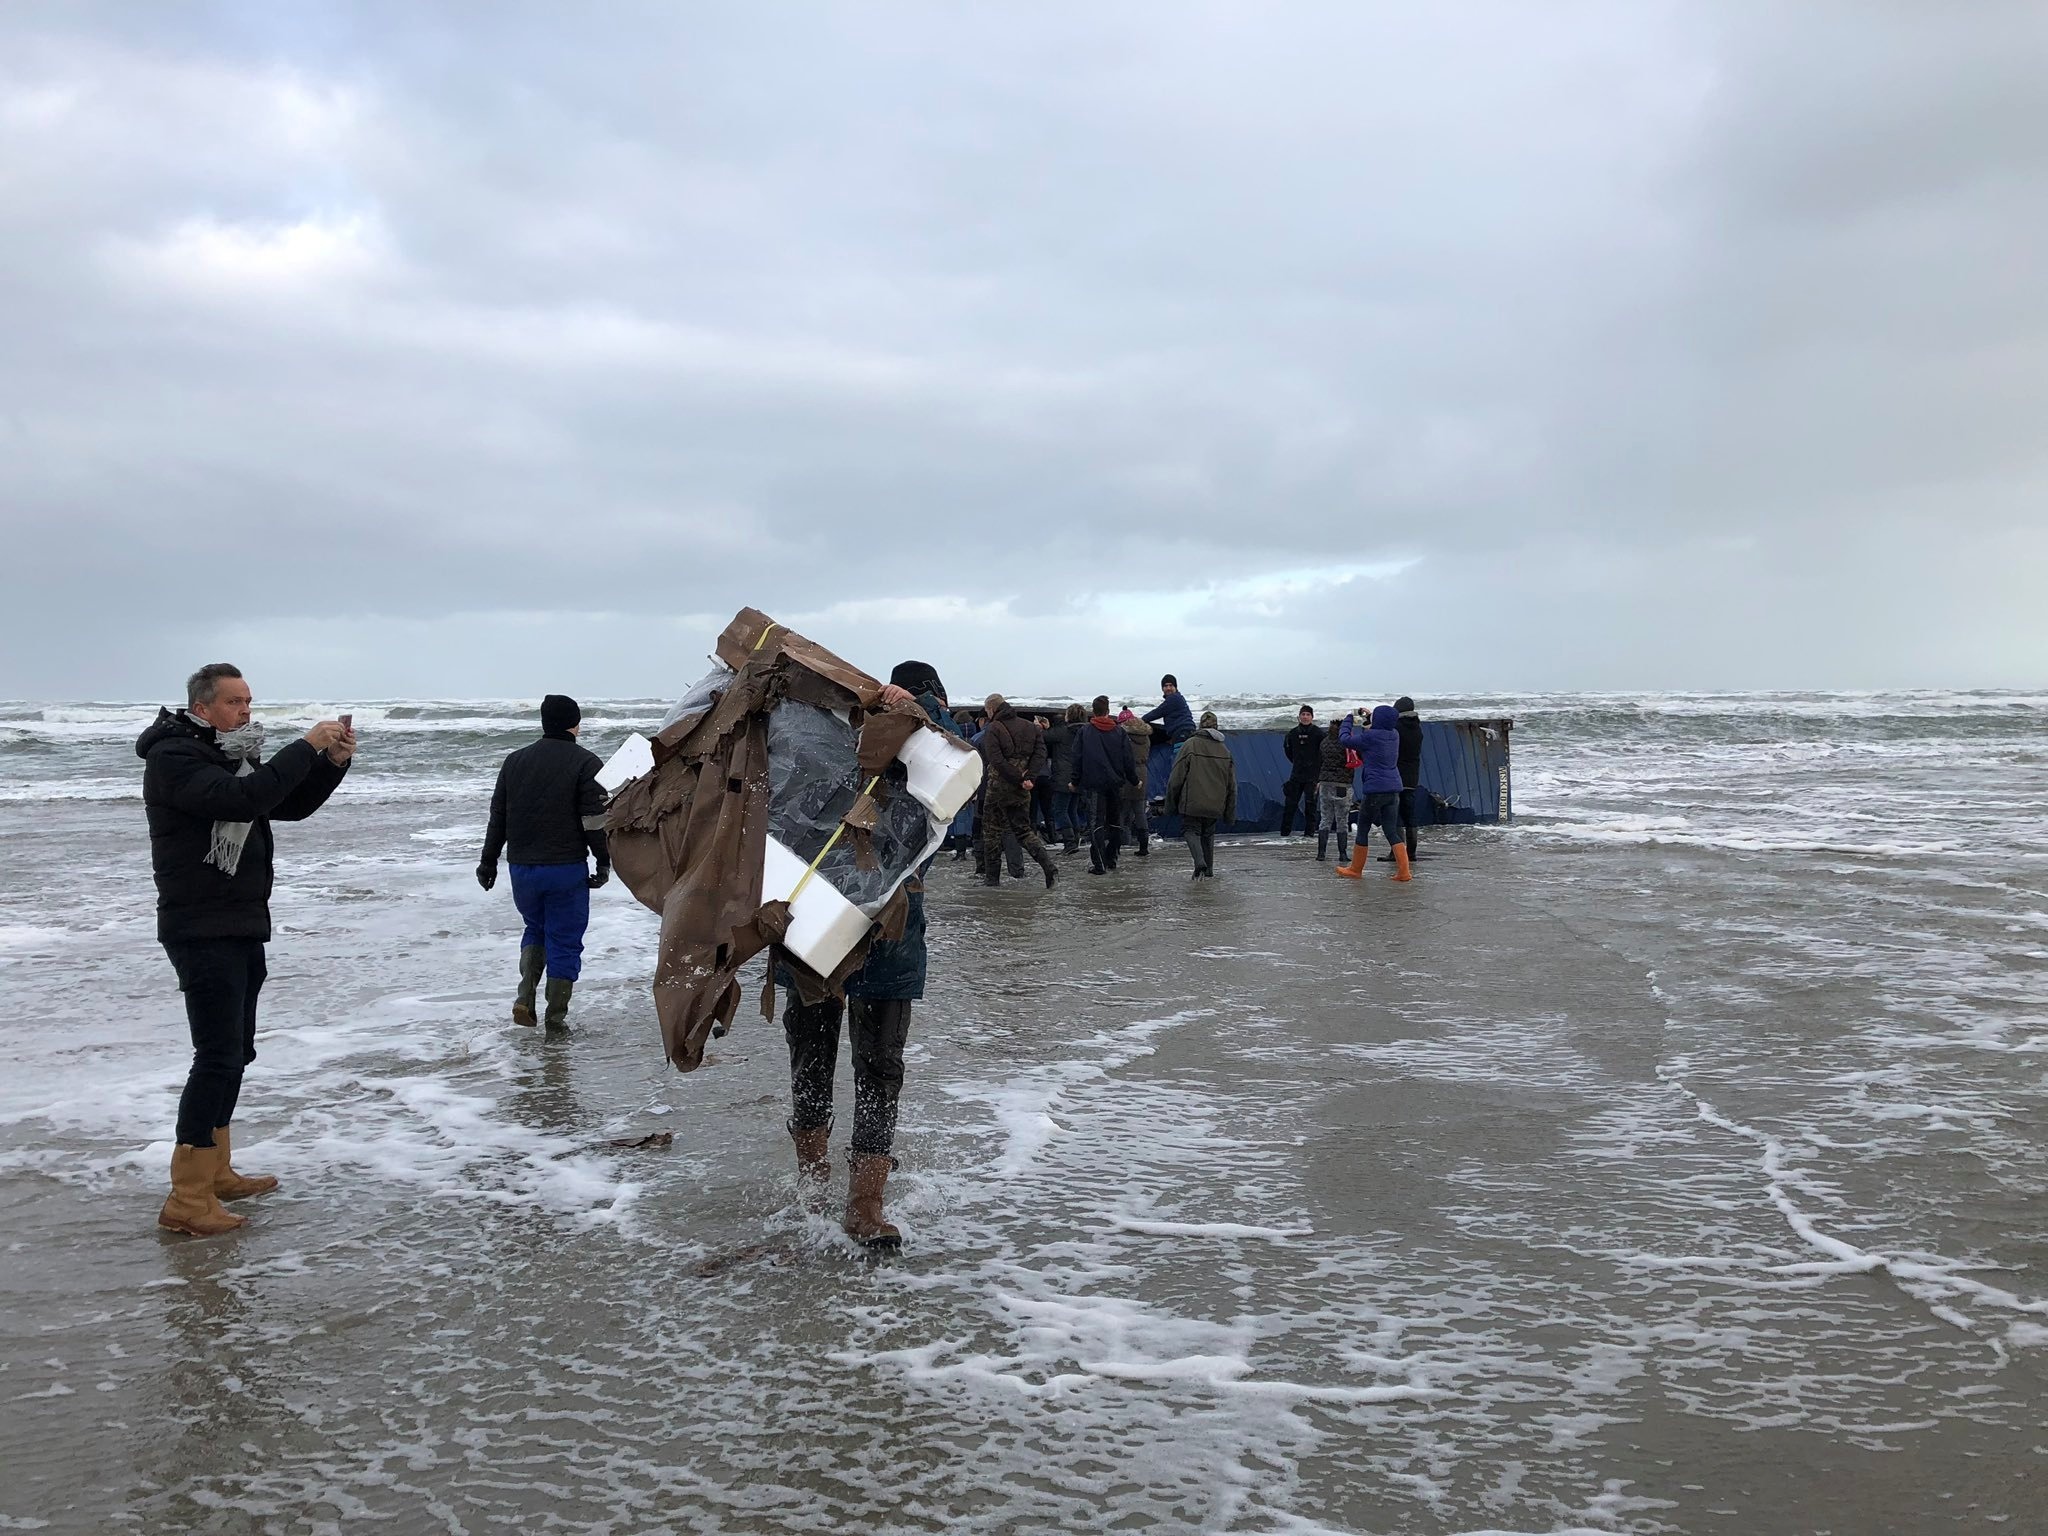 A person carries a flat-screen television set as others inspect a cargo container after it washed up on a beach in Terschelling, Netherlands January 2, 2019 in this image obtained from social media. Erik Scheer via REUTERS ATTENTION EDITORS - THIS IMAGE WAS PROVIDED BY A THIRD PARTY. NO RESALES. NO ARCHIVES. MANDATORY CREDIT.